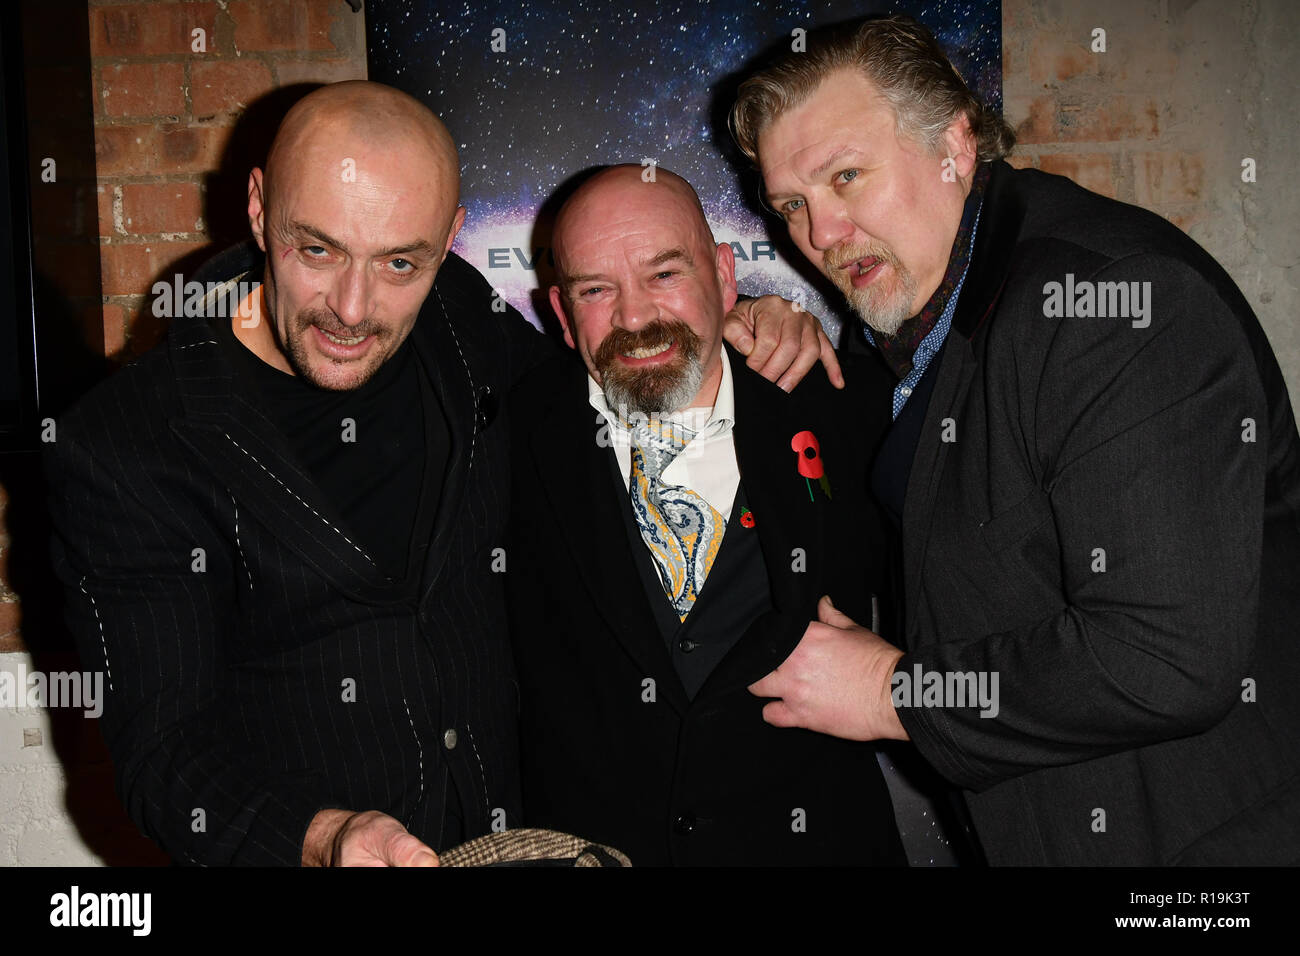 Sean Cronin, Derek Carey Vernon and Rock Salt arrivers at Eleven Film Premiere at Picture House Central, Piccadilly Circus on 10 November 2018, London, Uk. - Stock Image